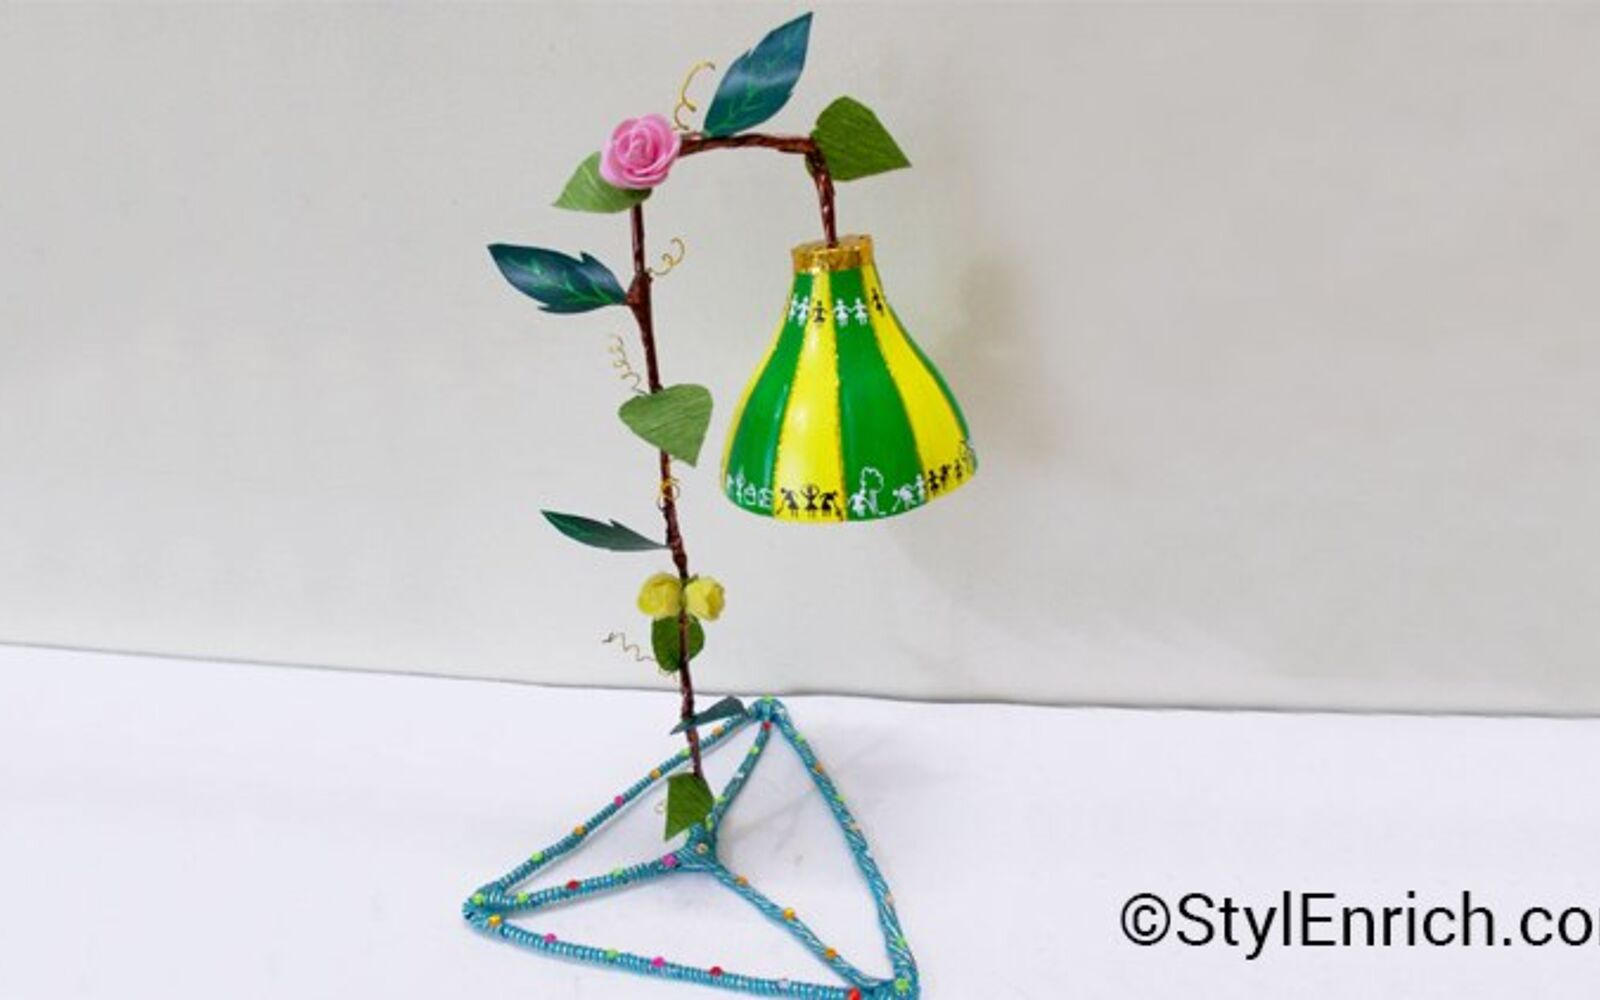 s 30 useful ways to reuse plastic bottles, Make a stunning lampshade